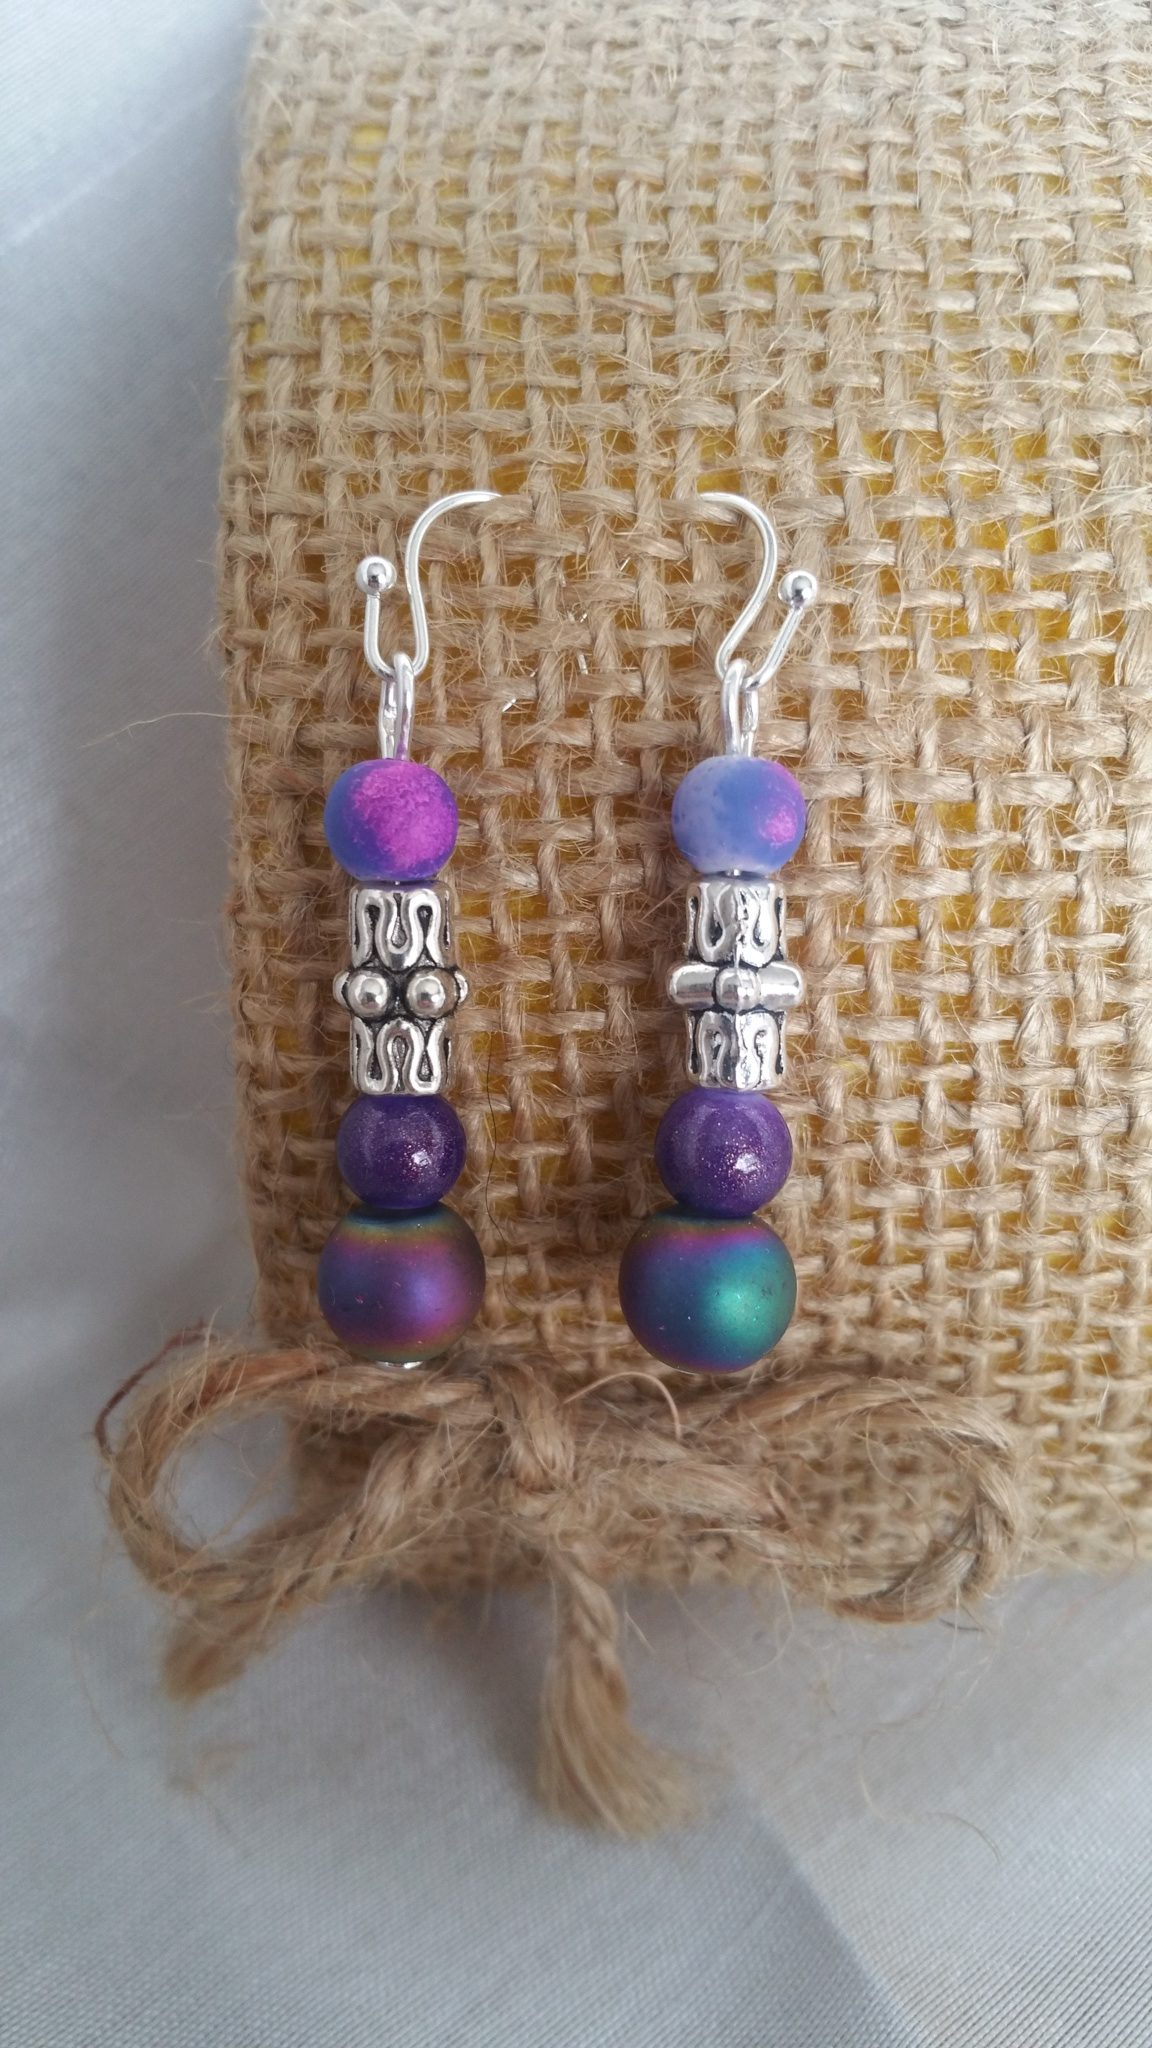 charm tip and beads silver metal Ethnic earrings in purple and purple agate bead